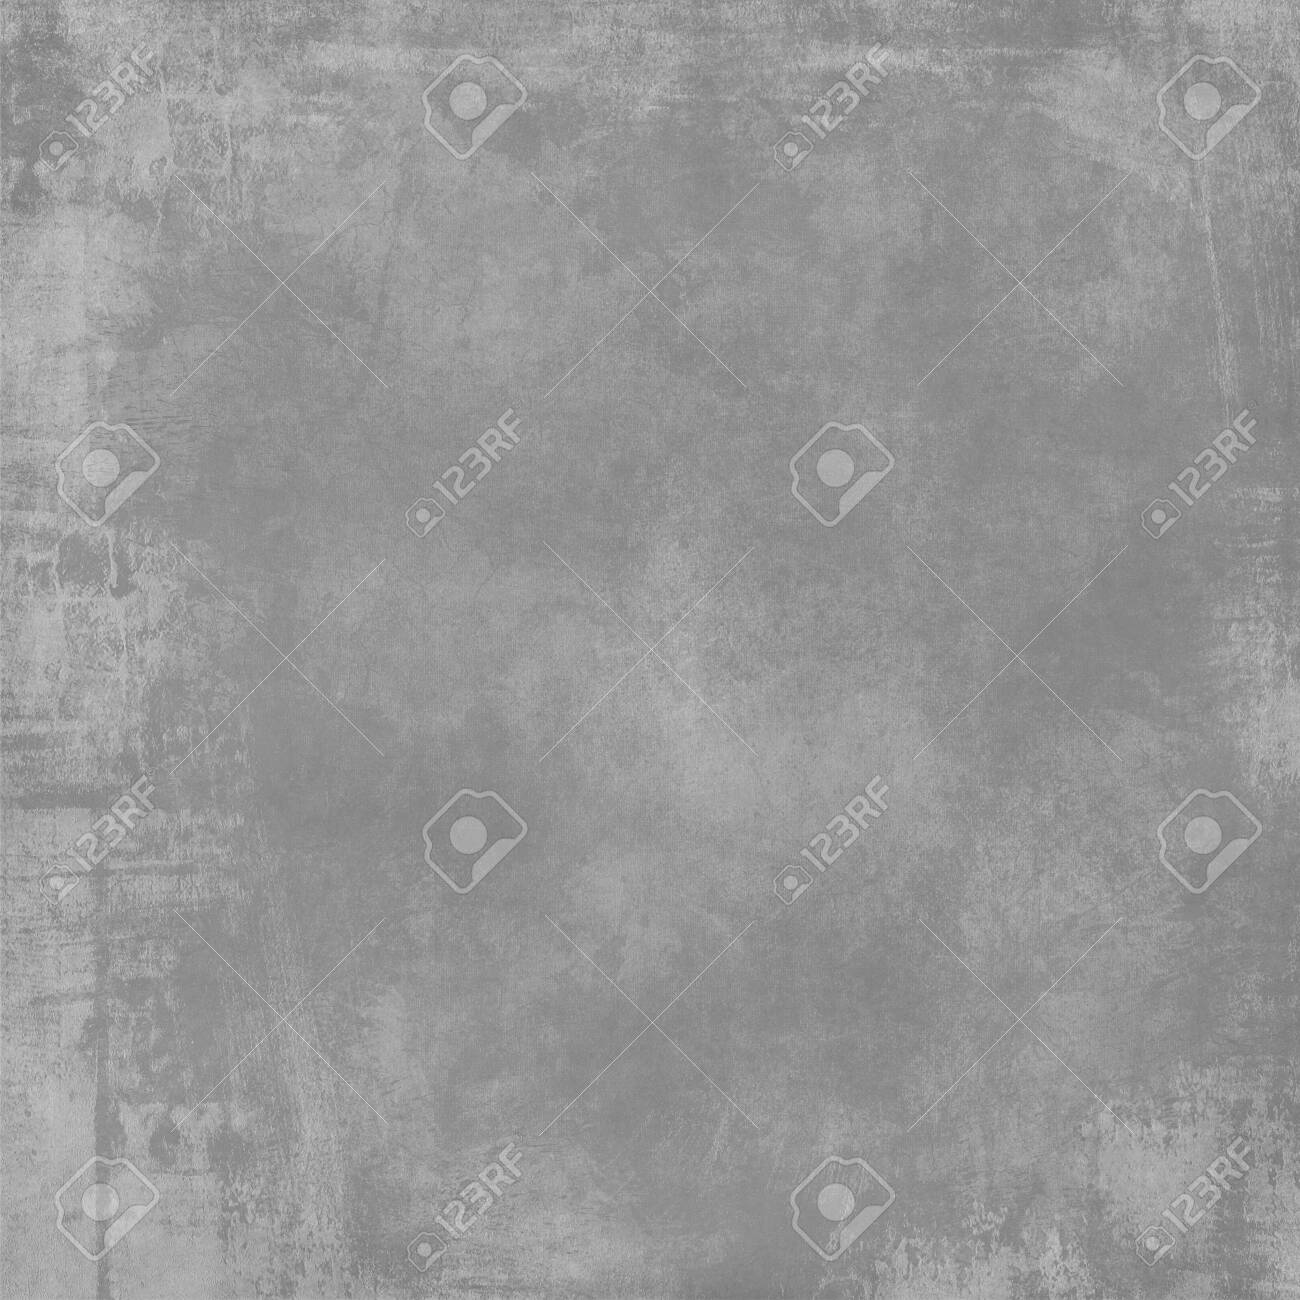 grunge abstract background - 140316264